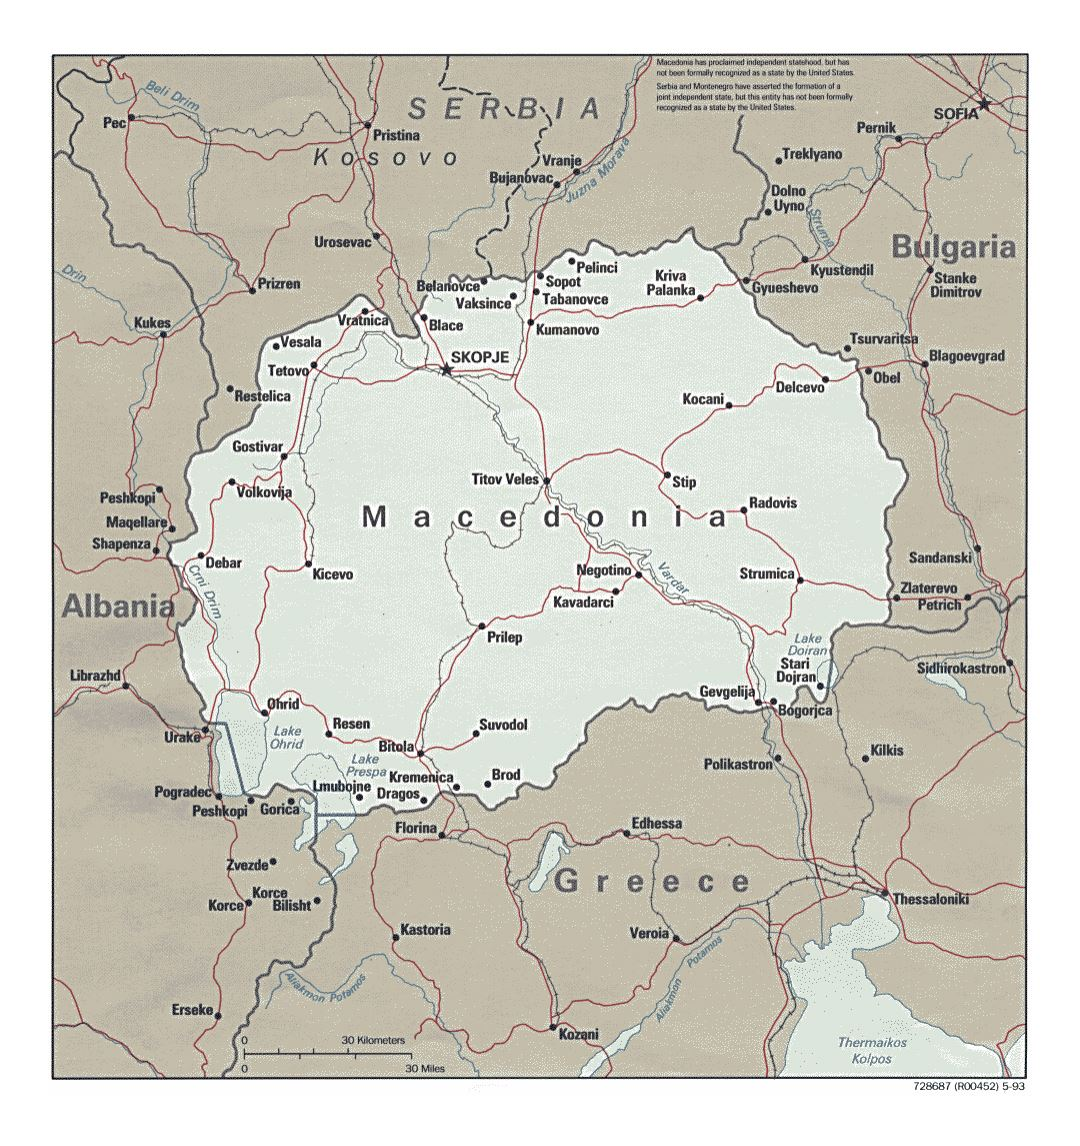 Detailed political map of macedonia with roads and major cities detailed political map of macedonia with roads and major cities 1993 publicscrutiny Image collections